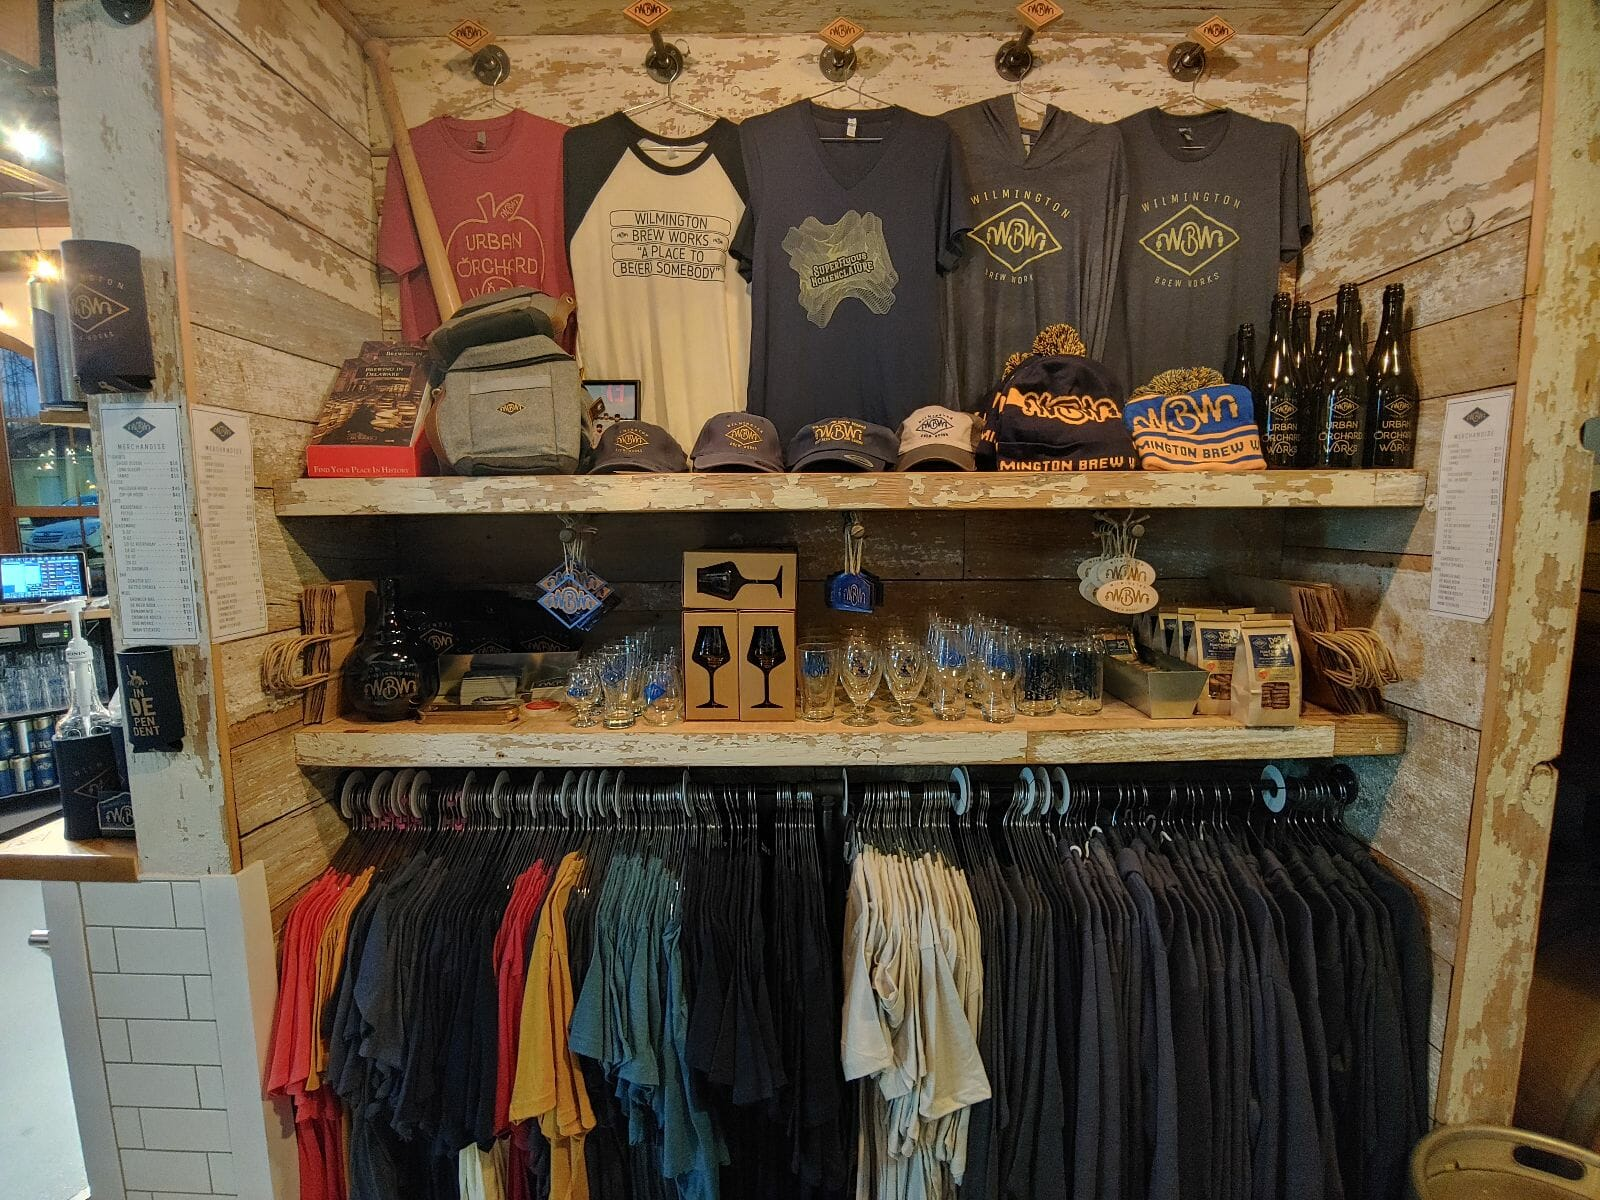 image of merchandise nook inside Wilmington Brew Works